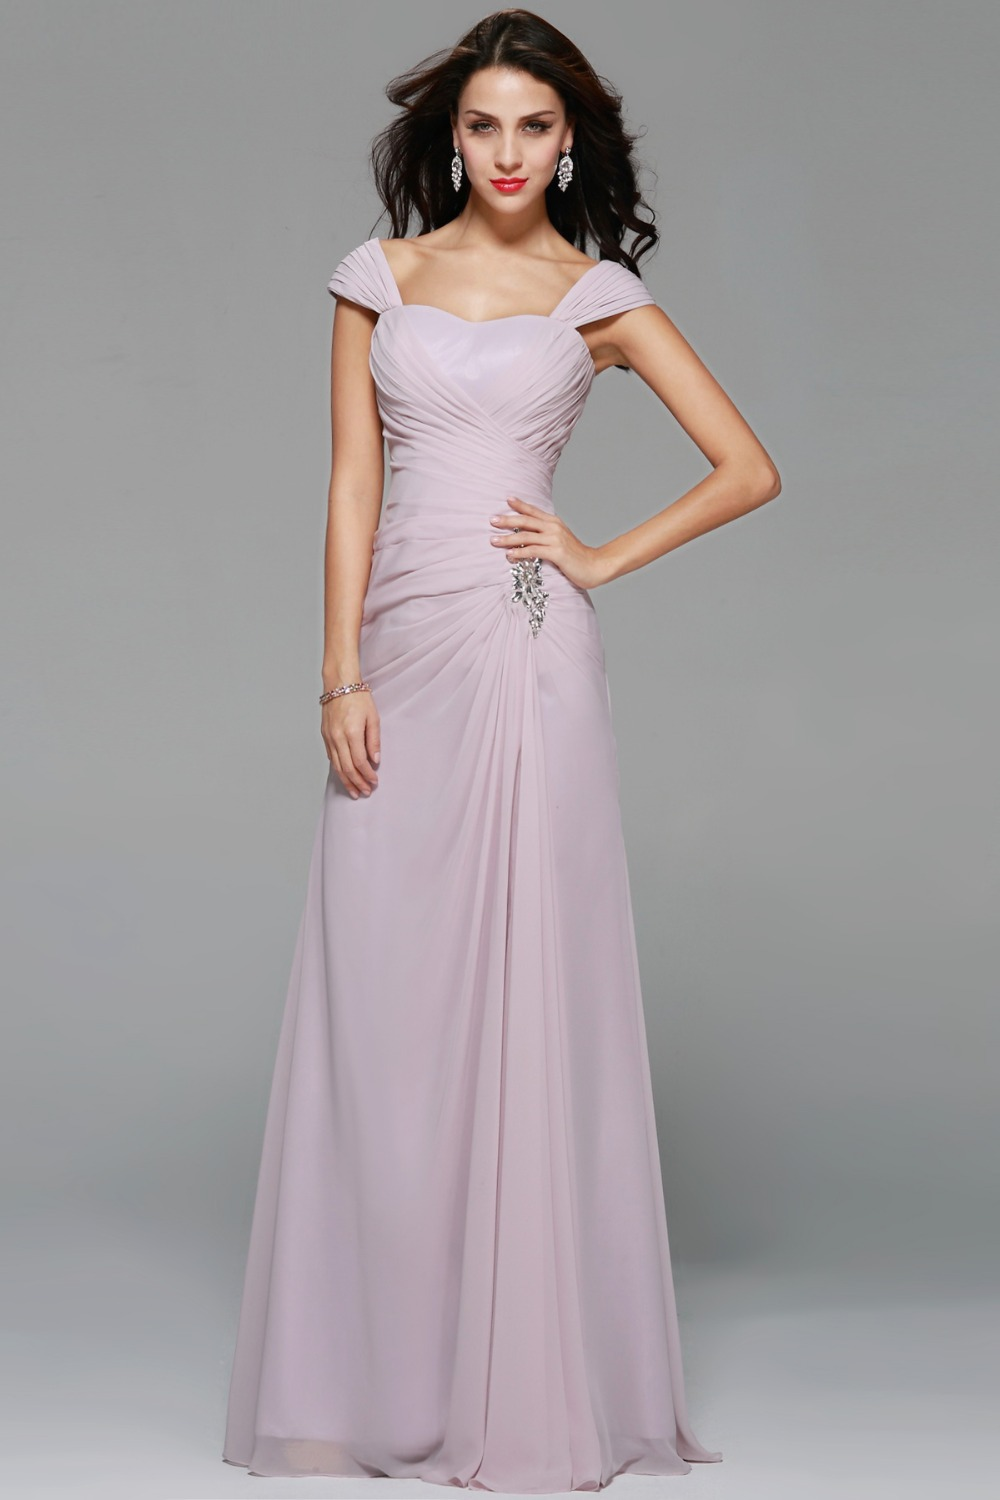 Charming Sexy Long Brautjungfer Kleid A-Line Liebsten Cap Sleeve ...